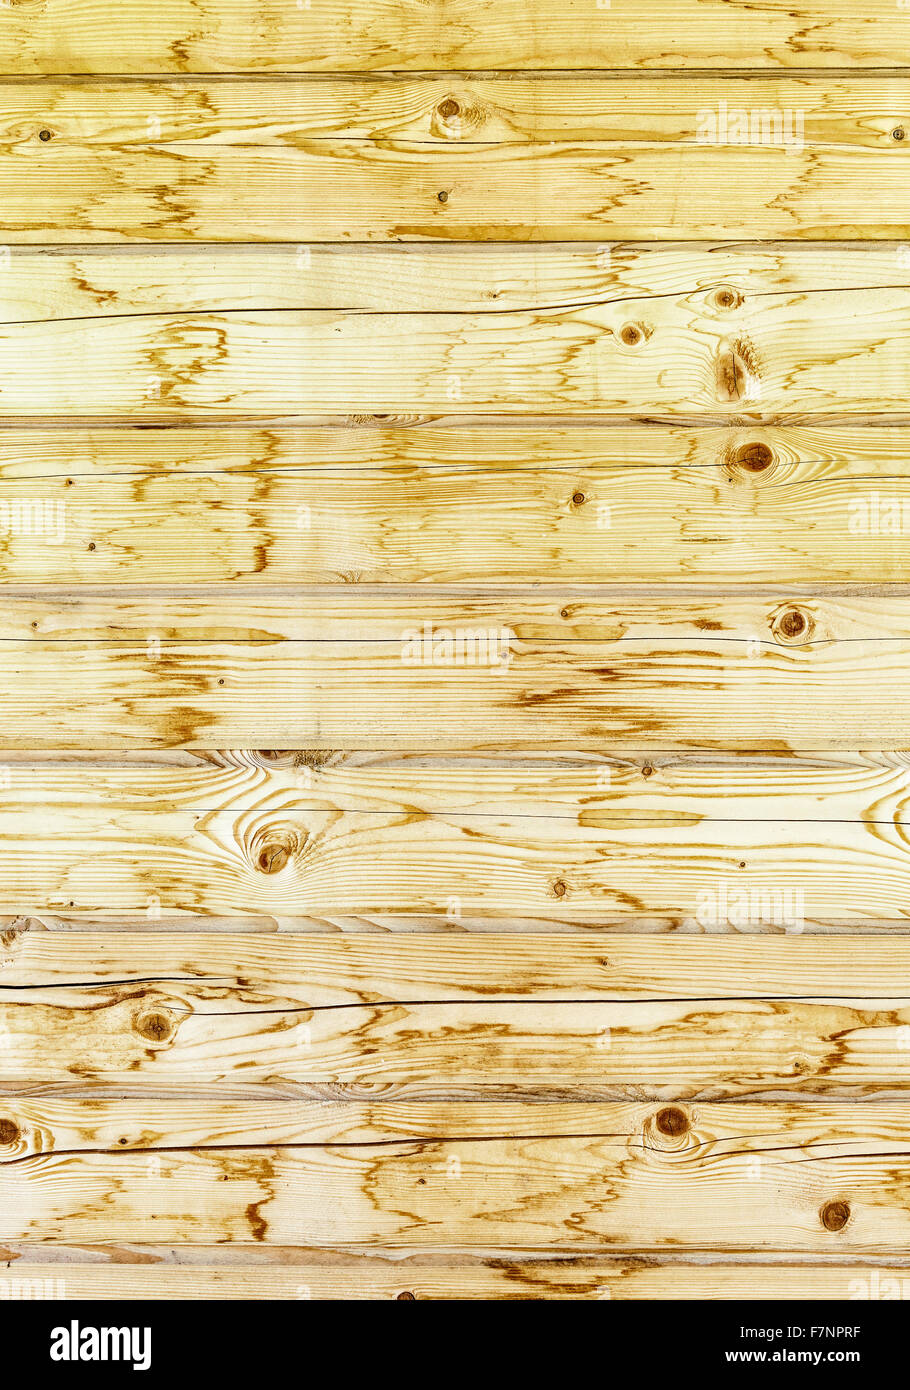 Wooden planks with natural patterns as background - Stock Image